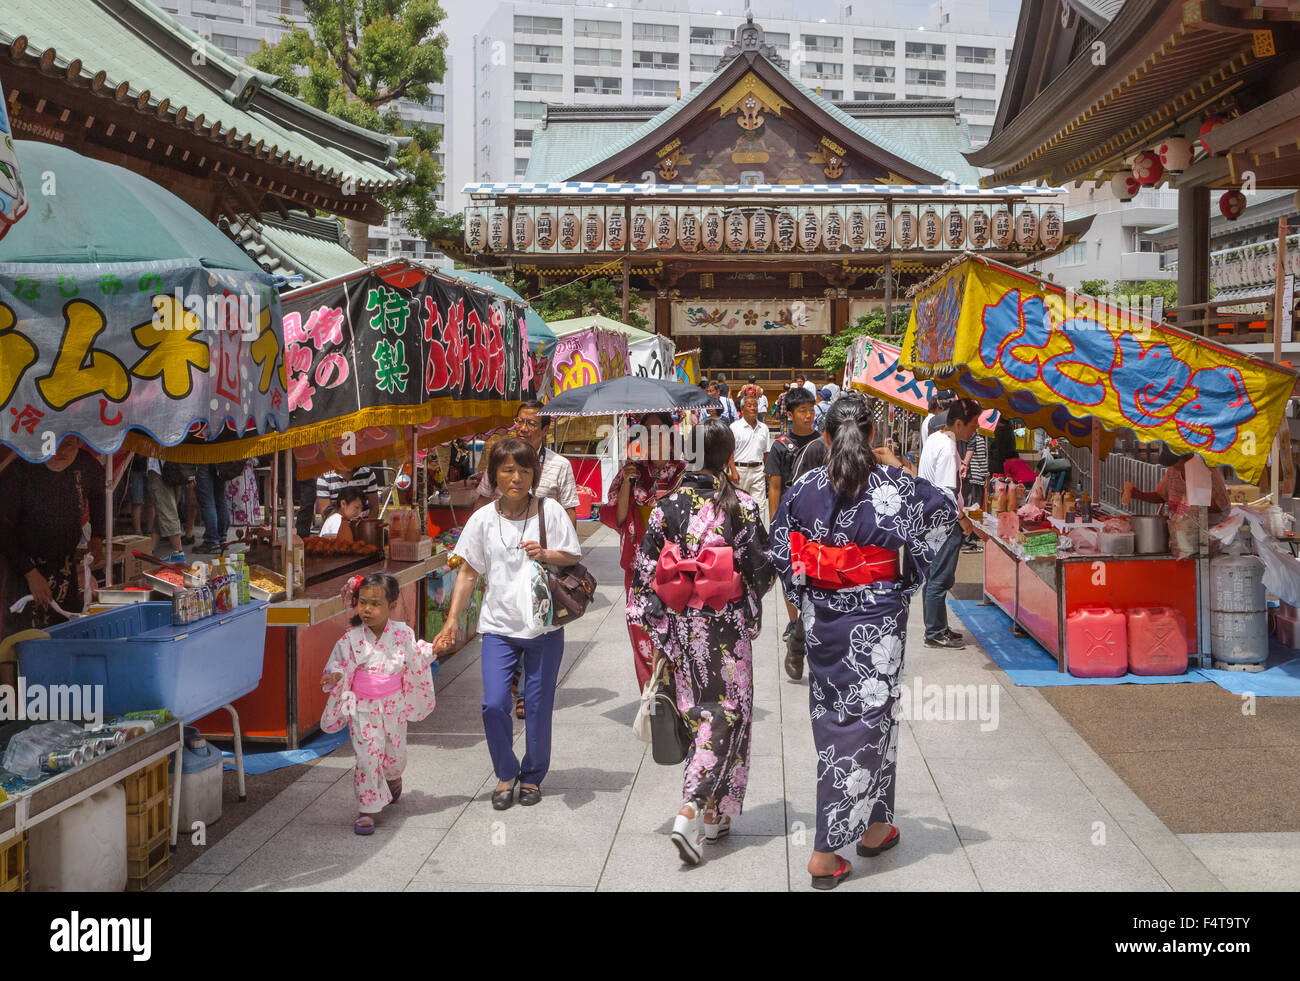 Japan, Tokyo City, Ueno, District, Yushima Shrine - Stock Image